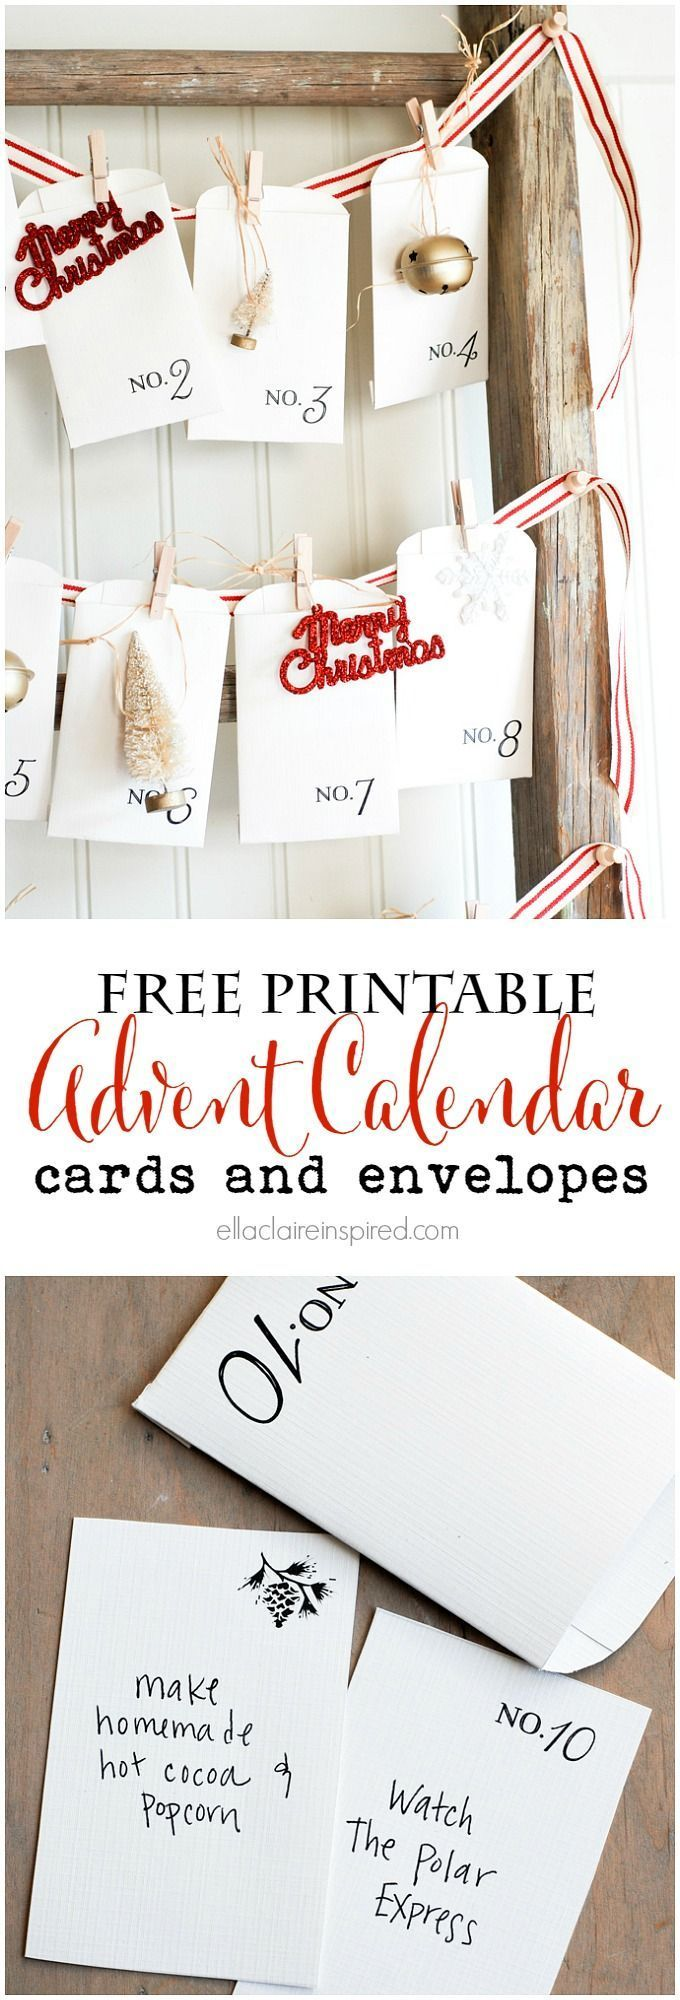 602 best DIY & Crafts that I love images on Pinterest | Merry ...